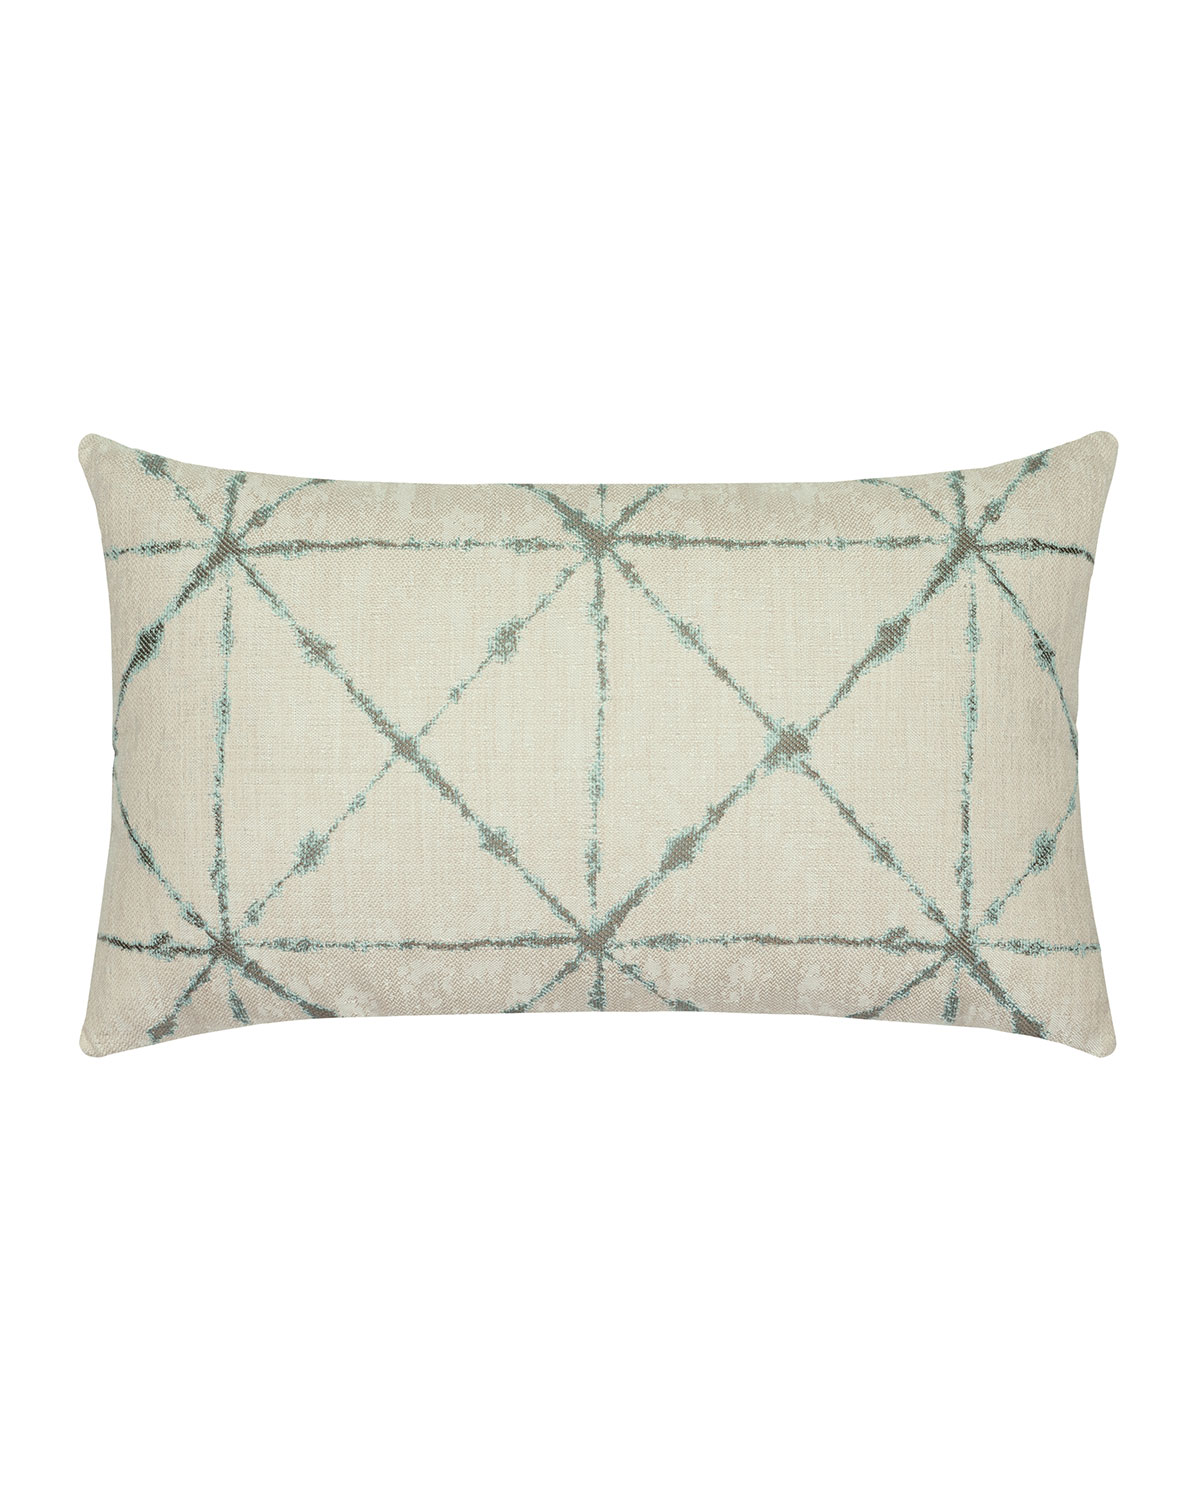 Elaine Smith Trilogy Lumbar Sunbrella Pillow